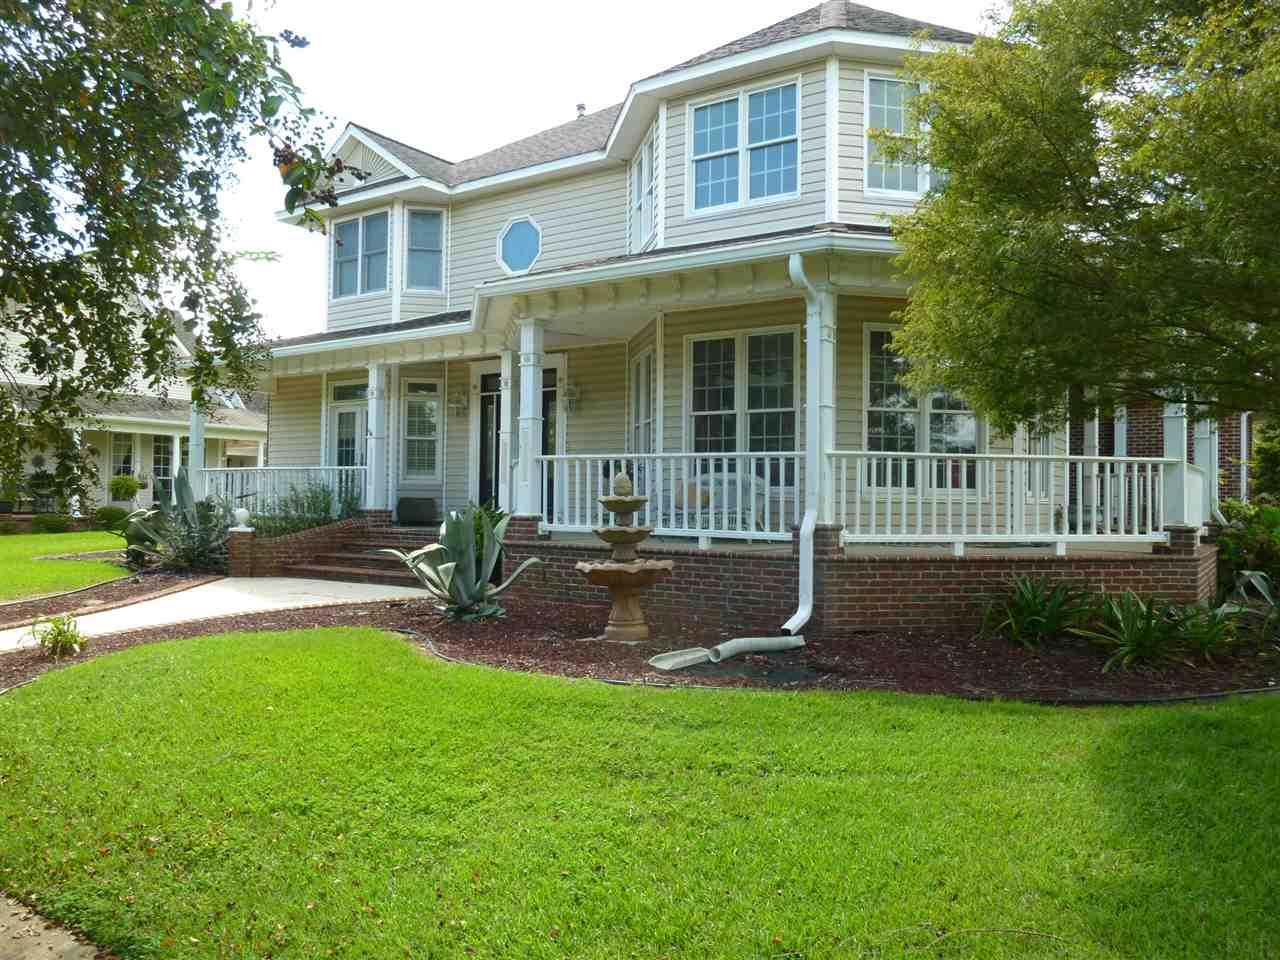 411 Mayberry St, Cantonment, FL 32533